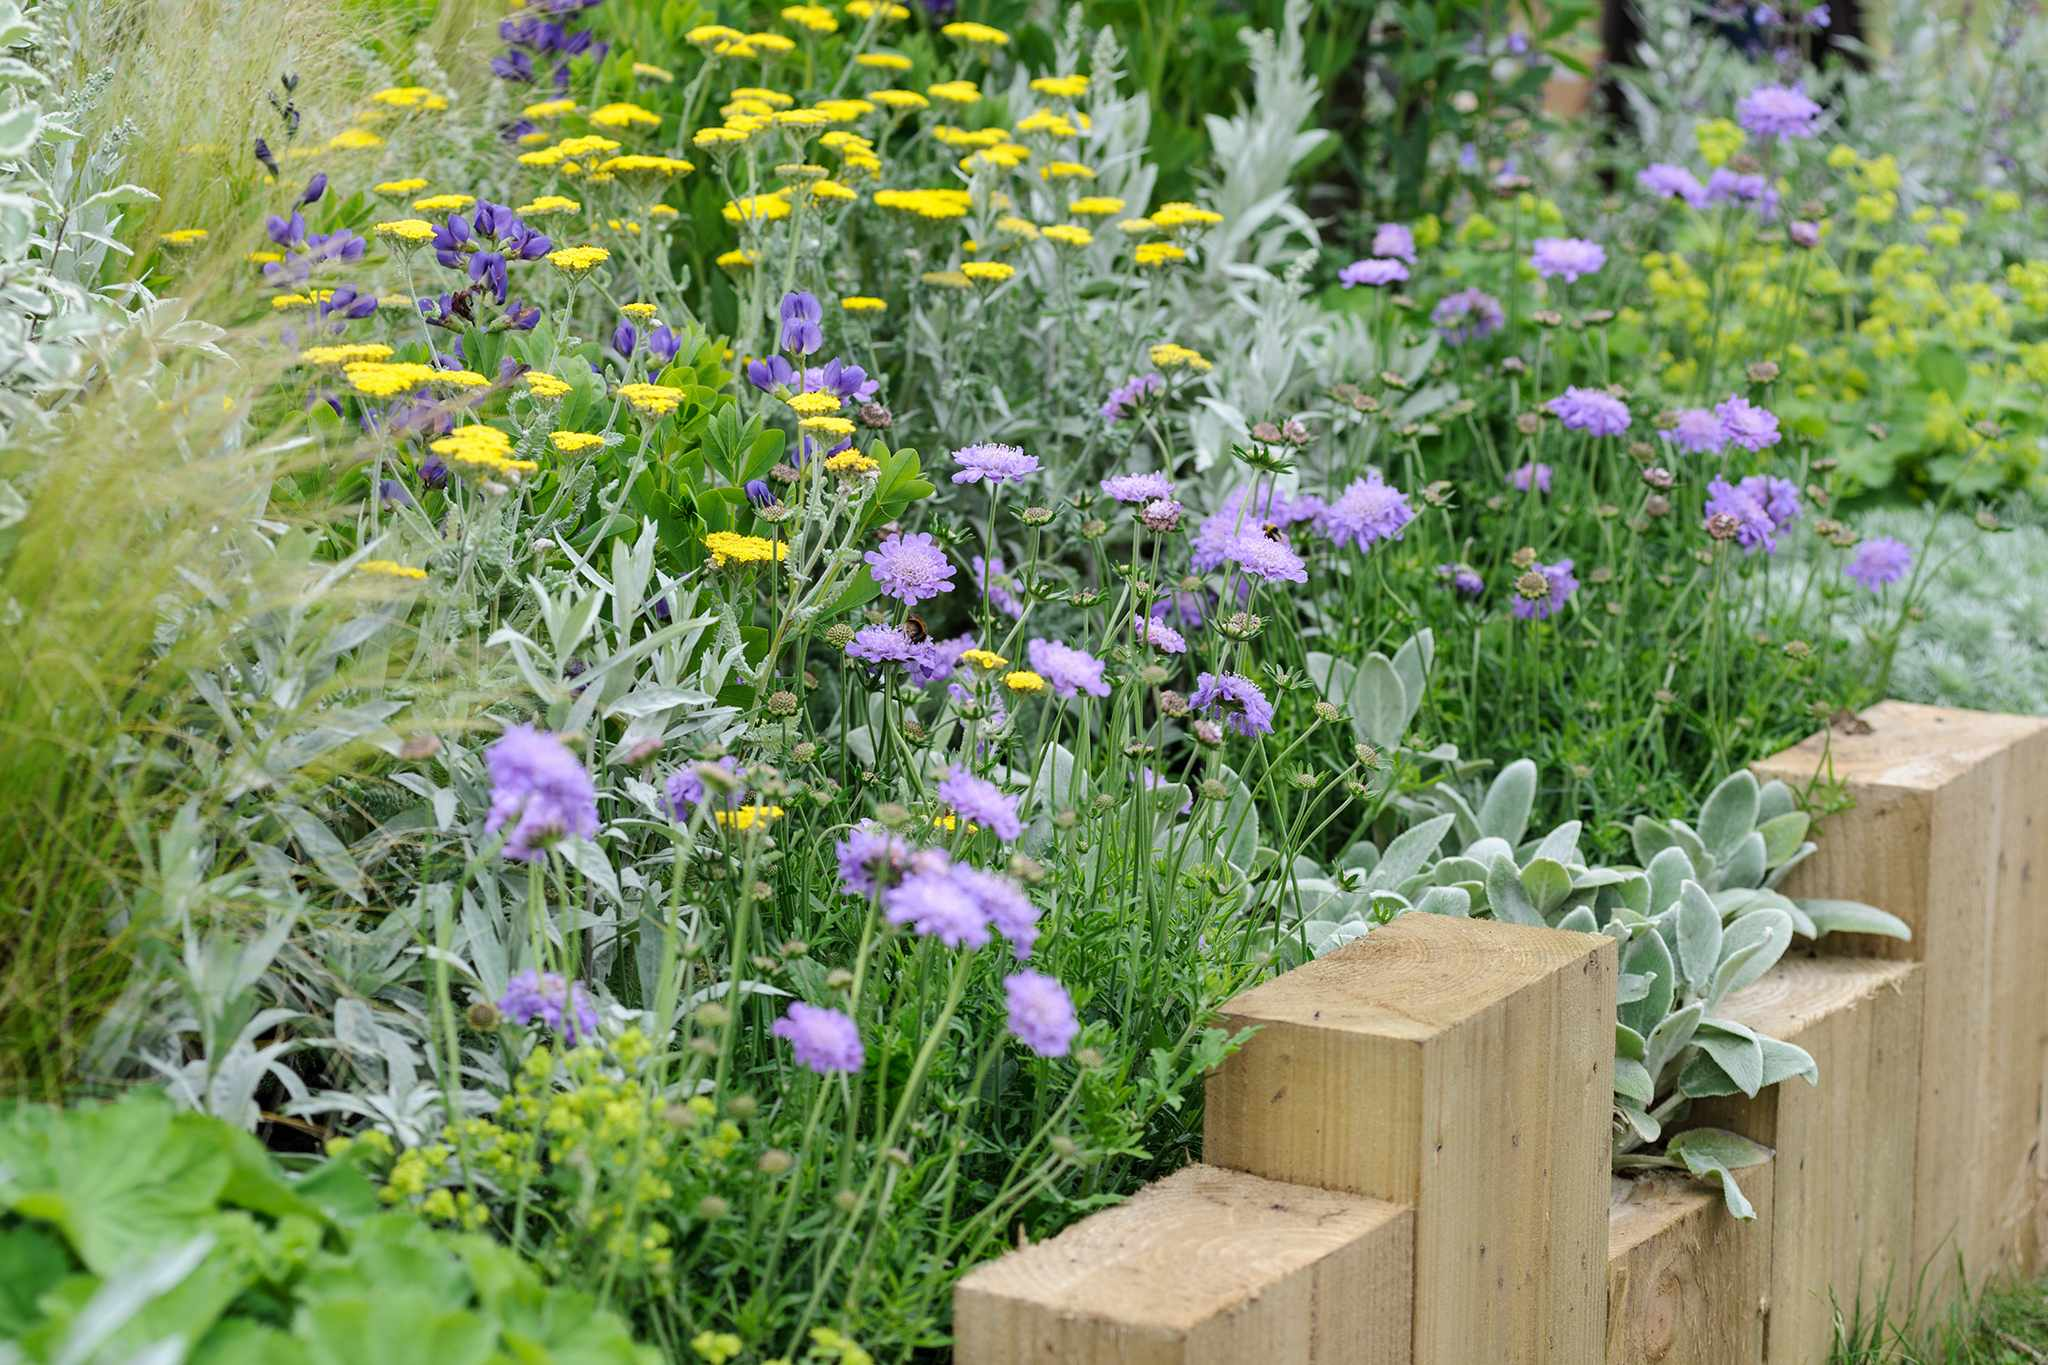 Repeat-flowering scabious growing with achillea and stachys